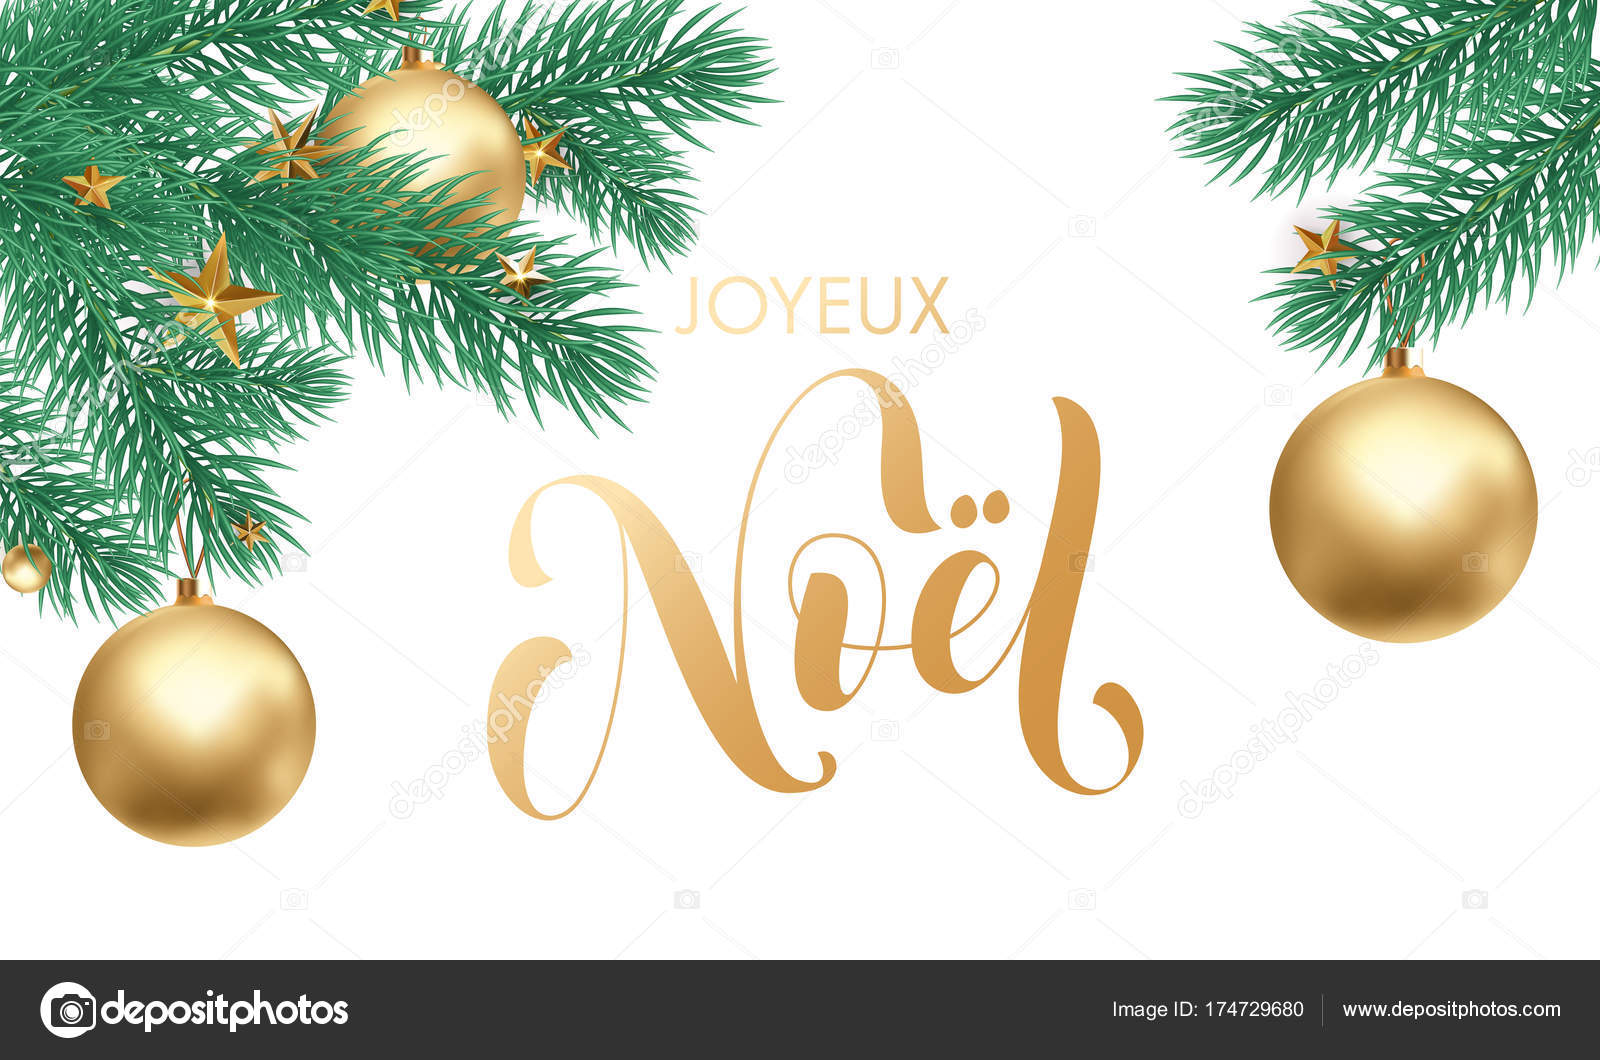 Joyeux noel french merry christmas holiday golden hand drawn joyeux noel french merry christmas holiday golden hand drawn calligraphy text greeting and gold star or ball on fir tree branch in white snow for card m4hsunfo